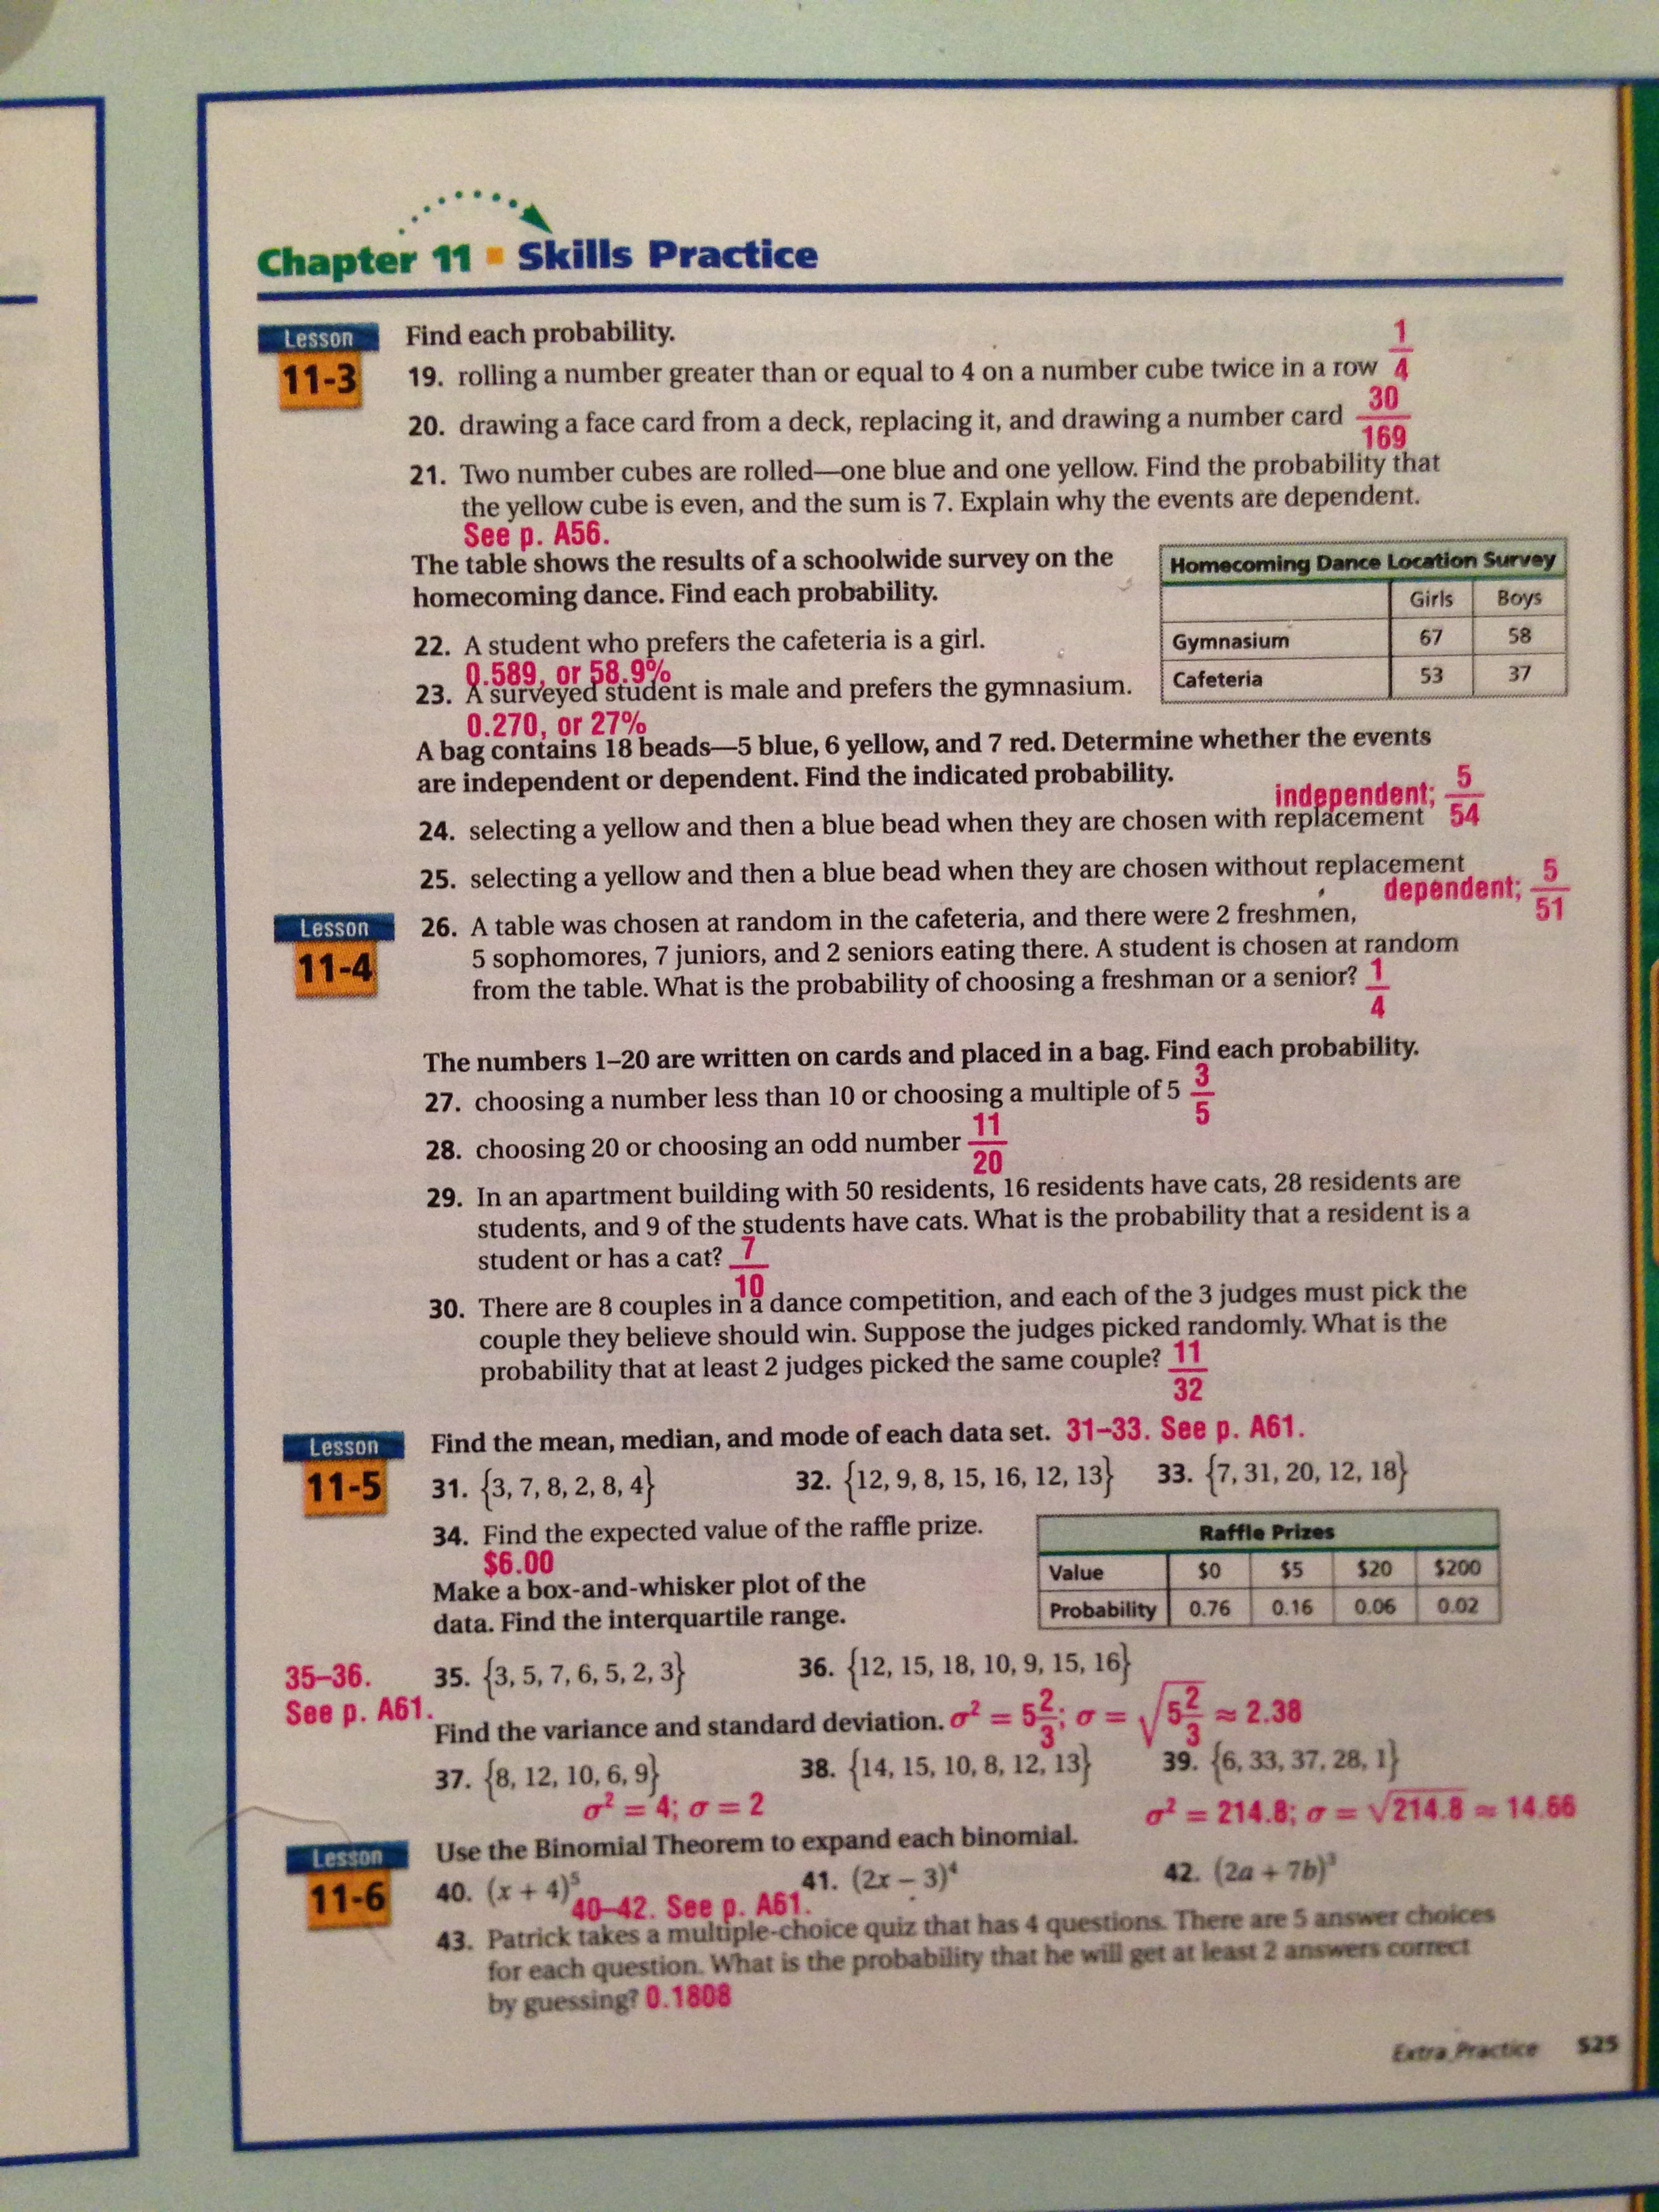 Bestseller Algebra 2 Conic Sections Practice Workbook Answers